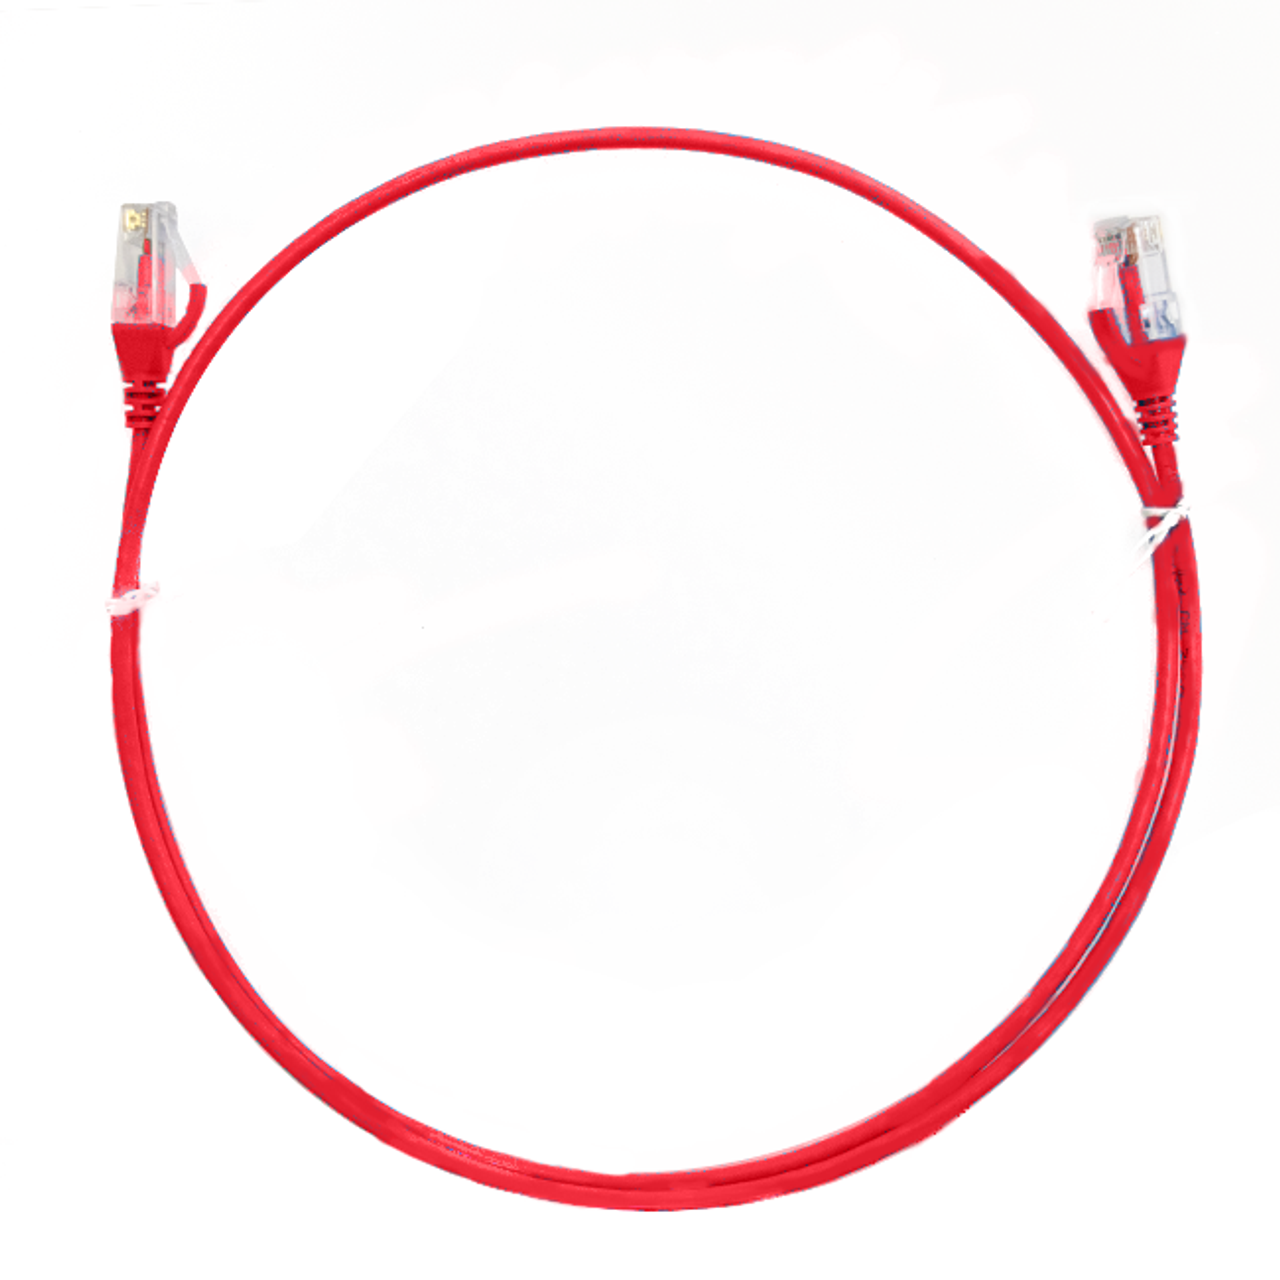 Image for 5m Cat 6 Ultra Thin LSZH Ethernet Network Cables: Red CX Computer Superstore